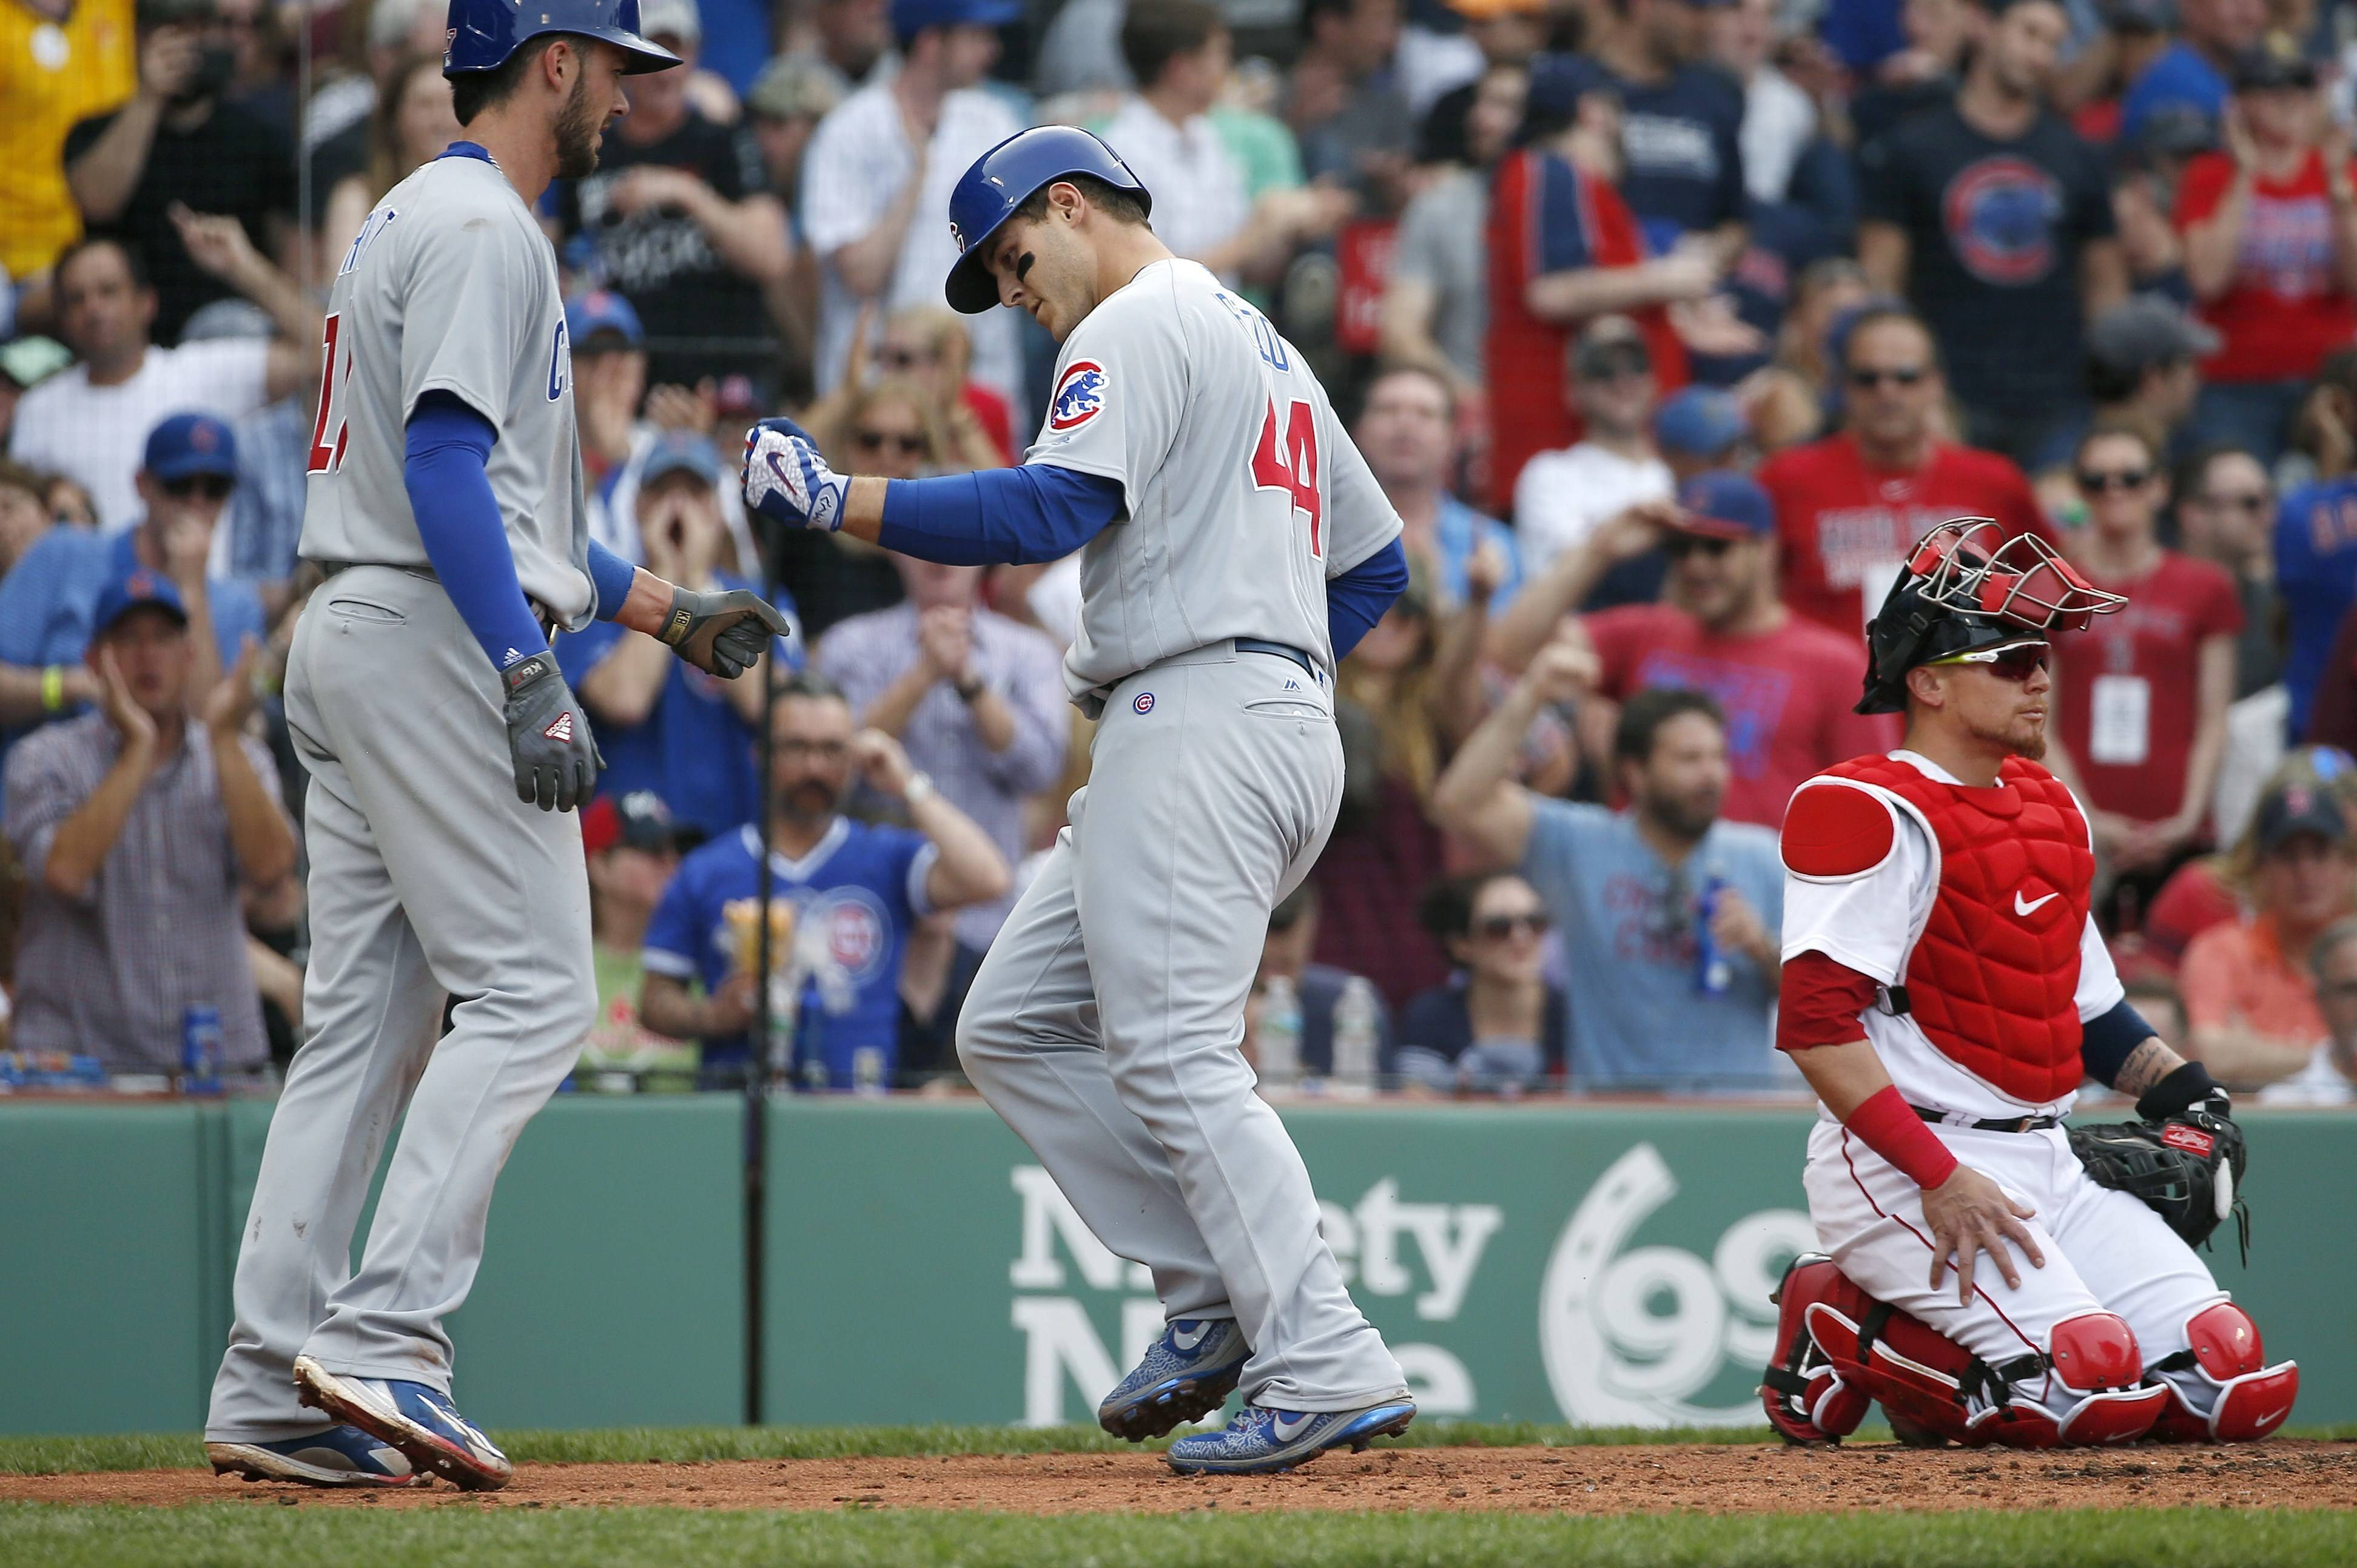 Chicago Cubs' Anthony Rizzo (44) celebrates his two-run home run that also drove in Kris Bryant, left, behind Boston Red Sox's Christian Vazquez, right, during the fourth inning of a baseball game, Saturday in Boston.